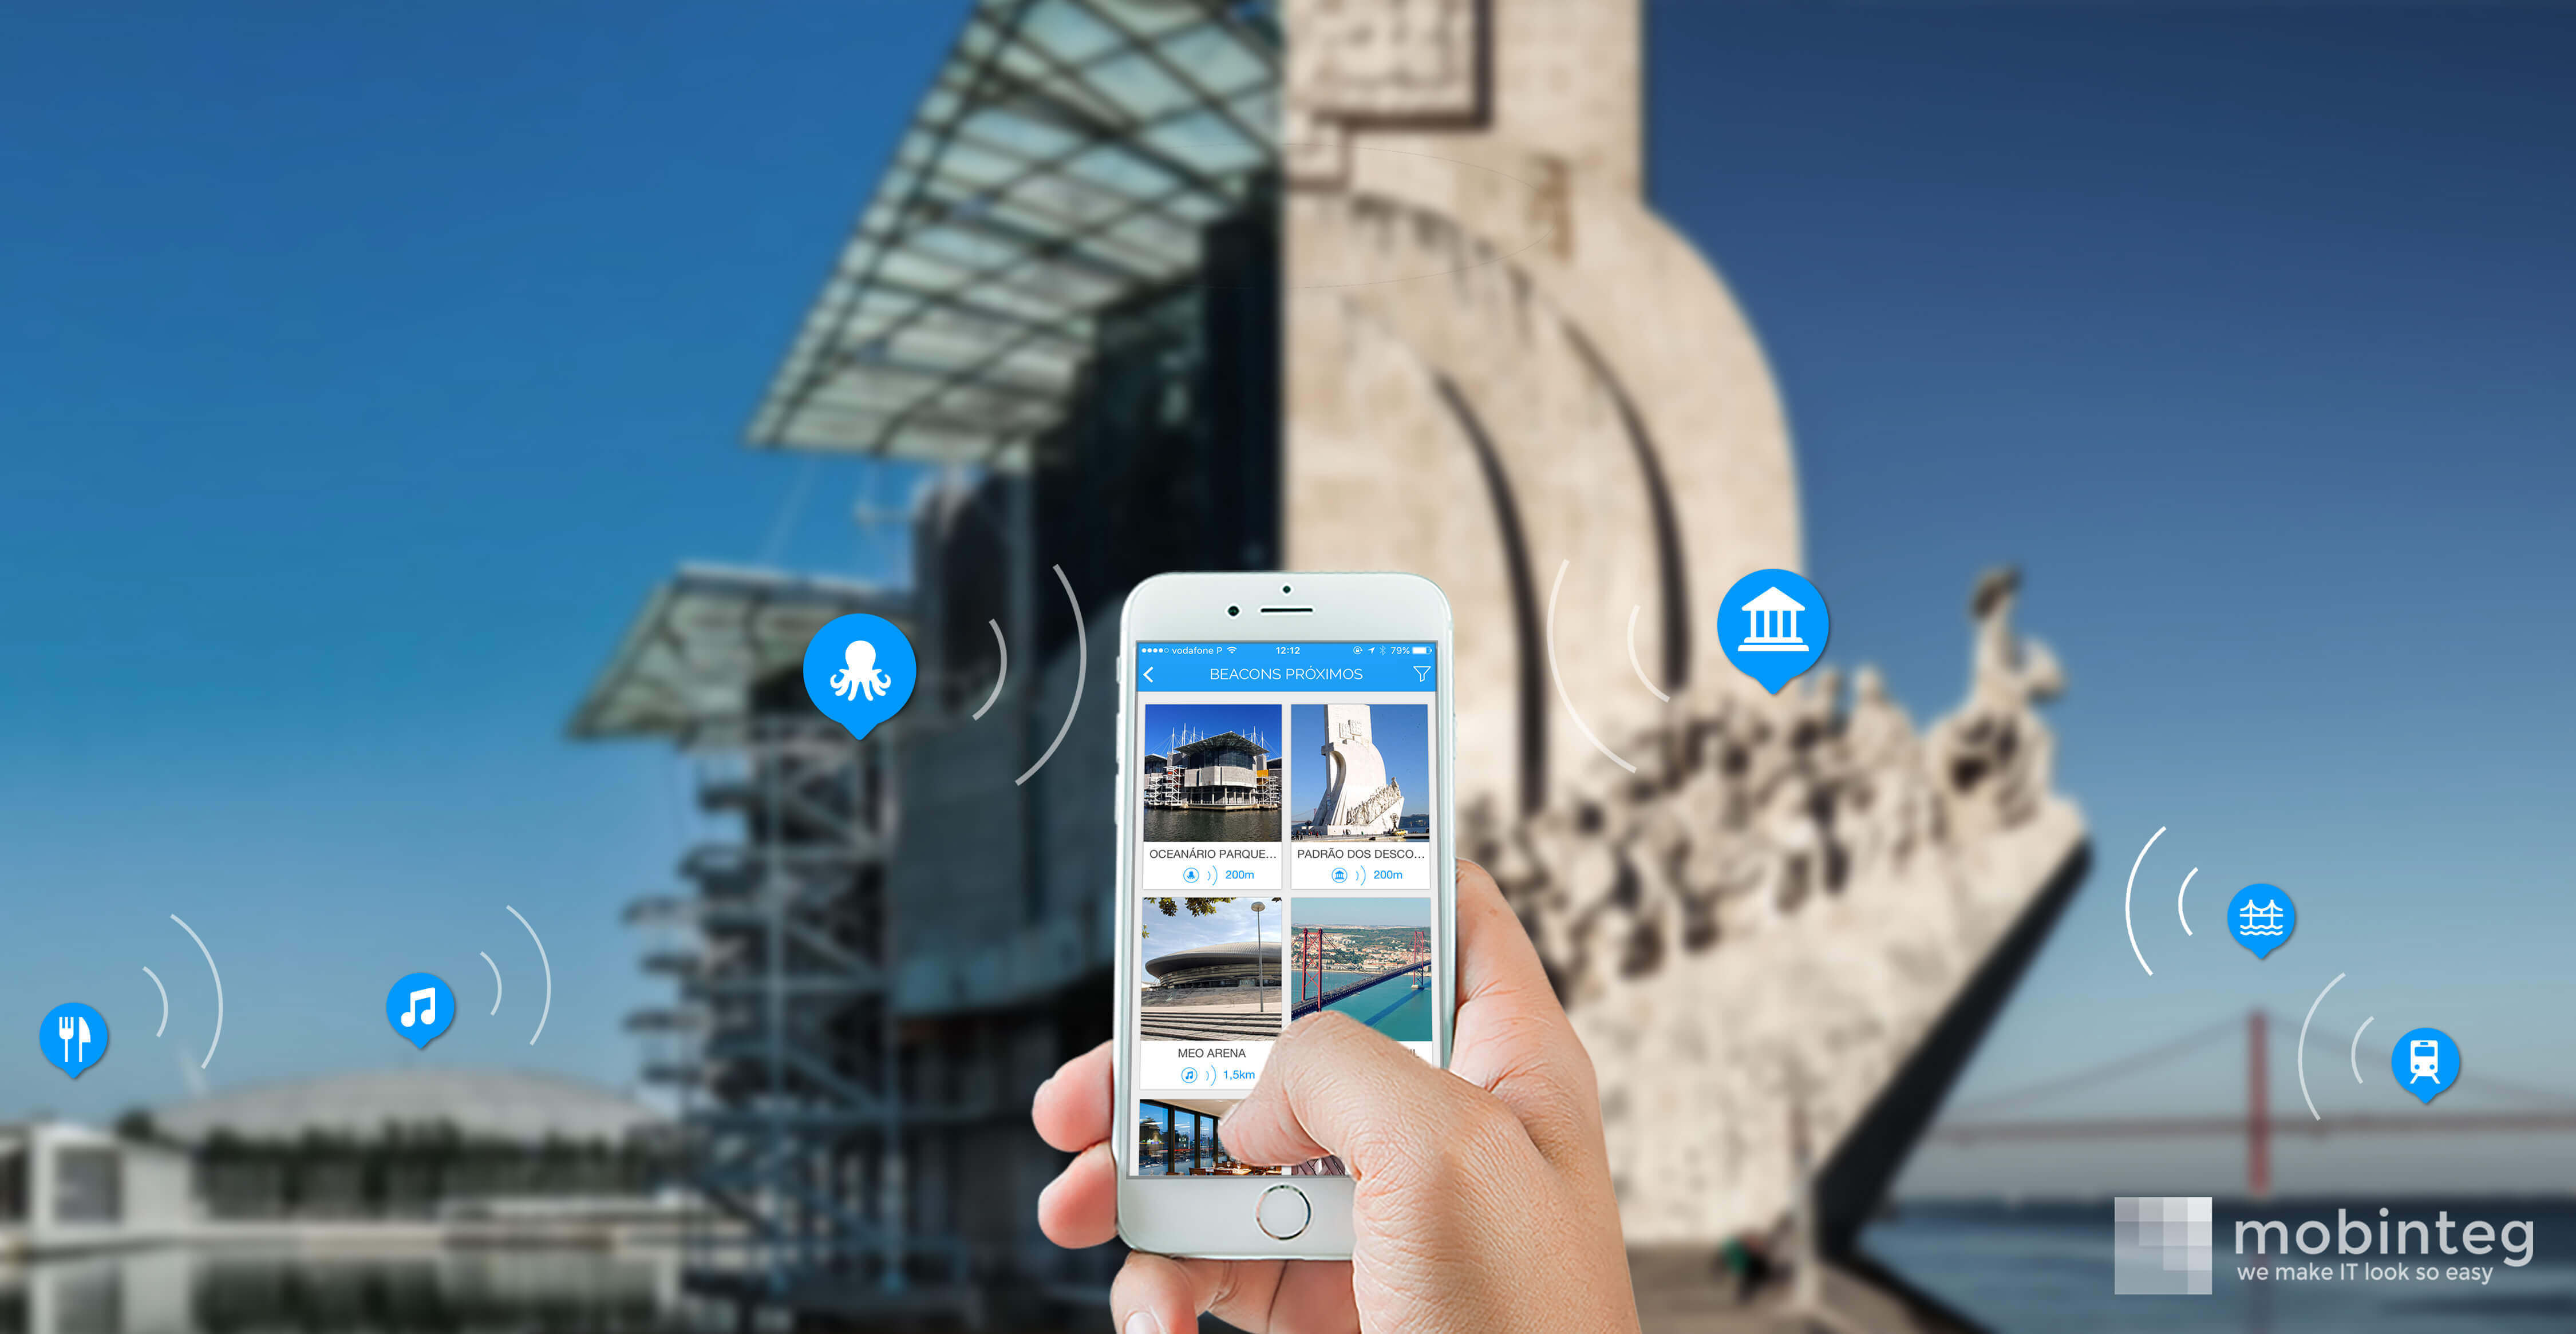 Web Summit: Portuguese 'App' shows destinations in an interactive way